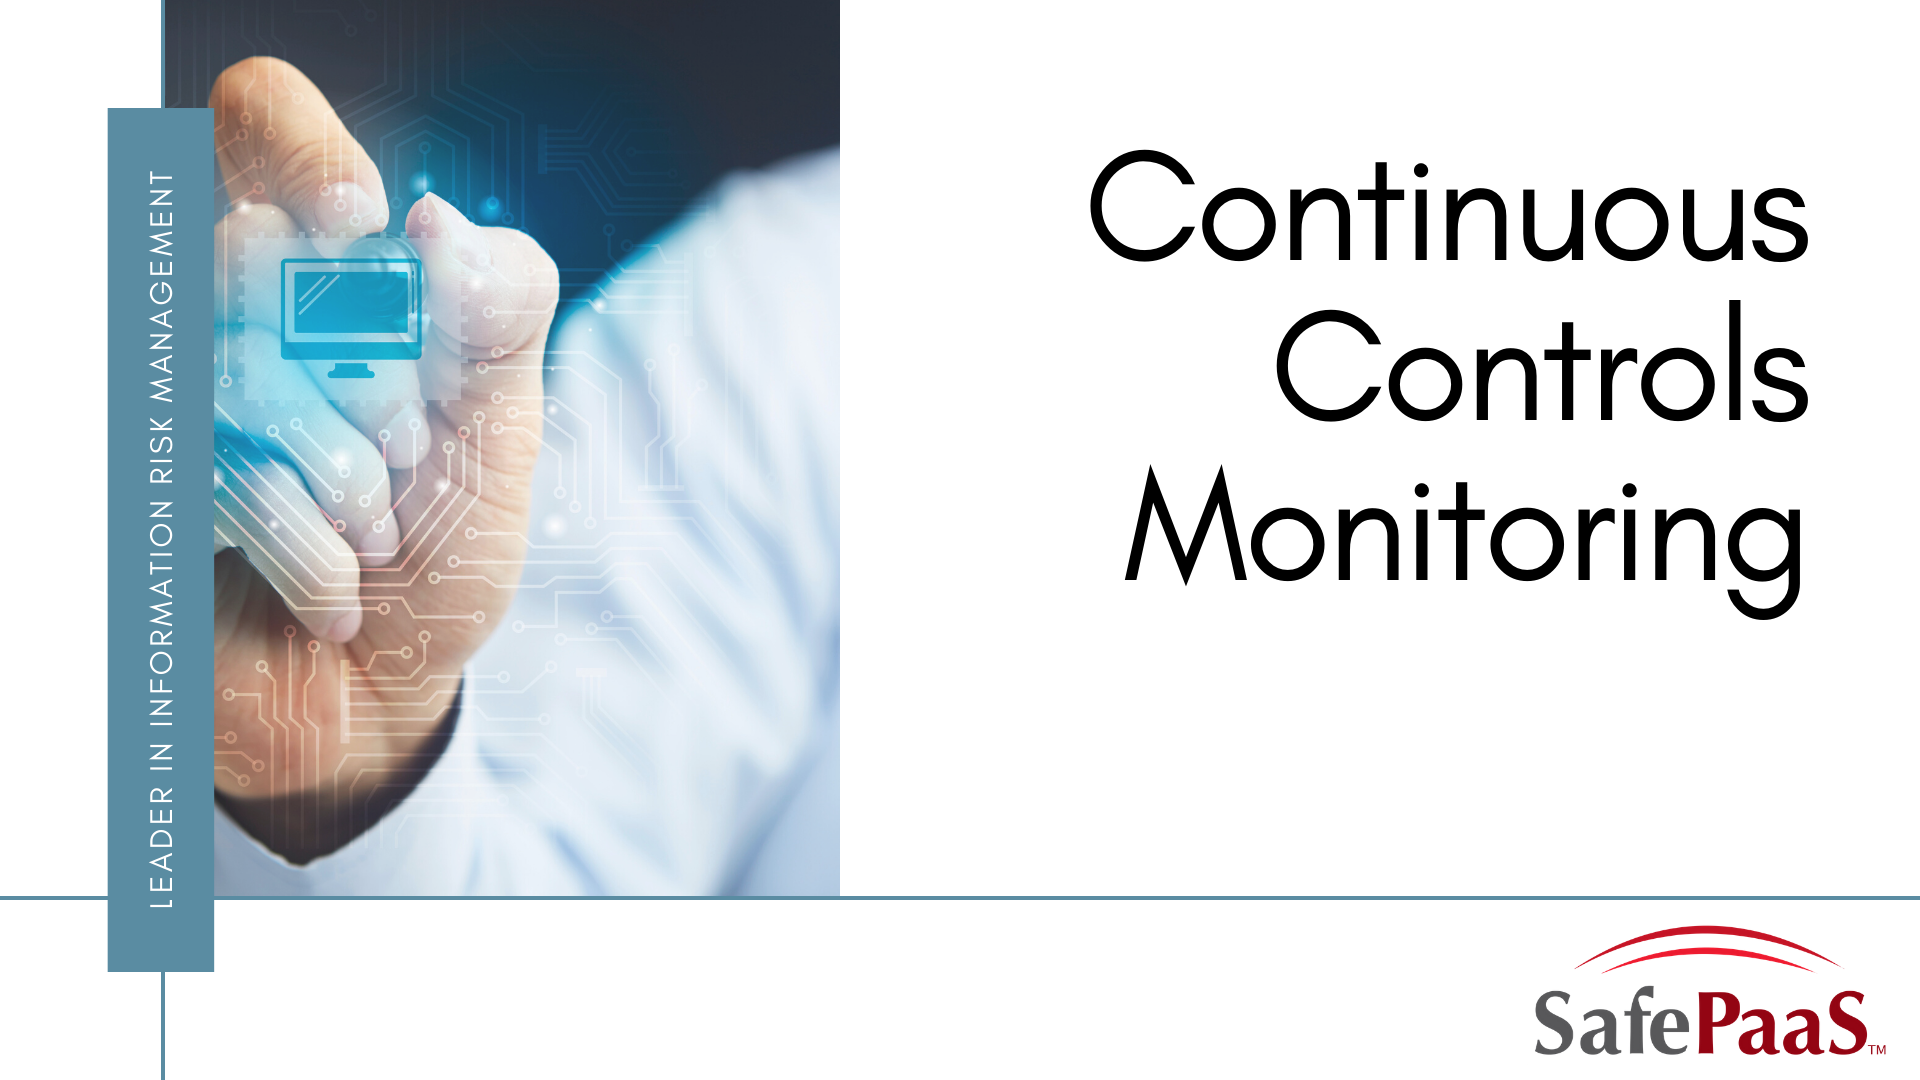 Continuous Controls Monitoring infographic